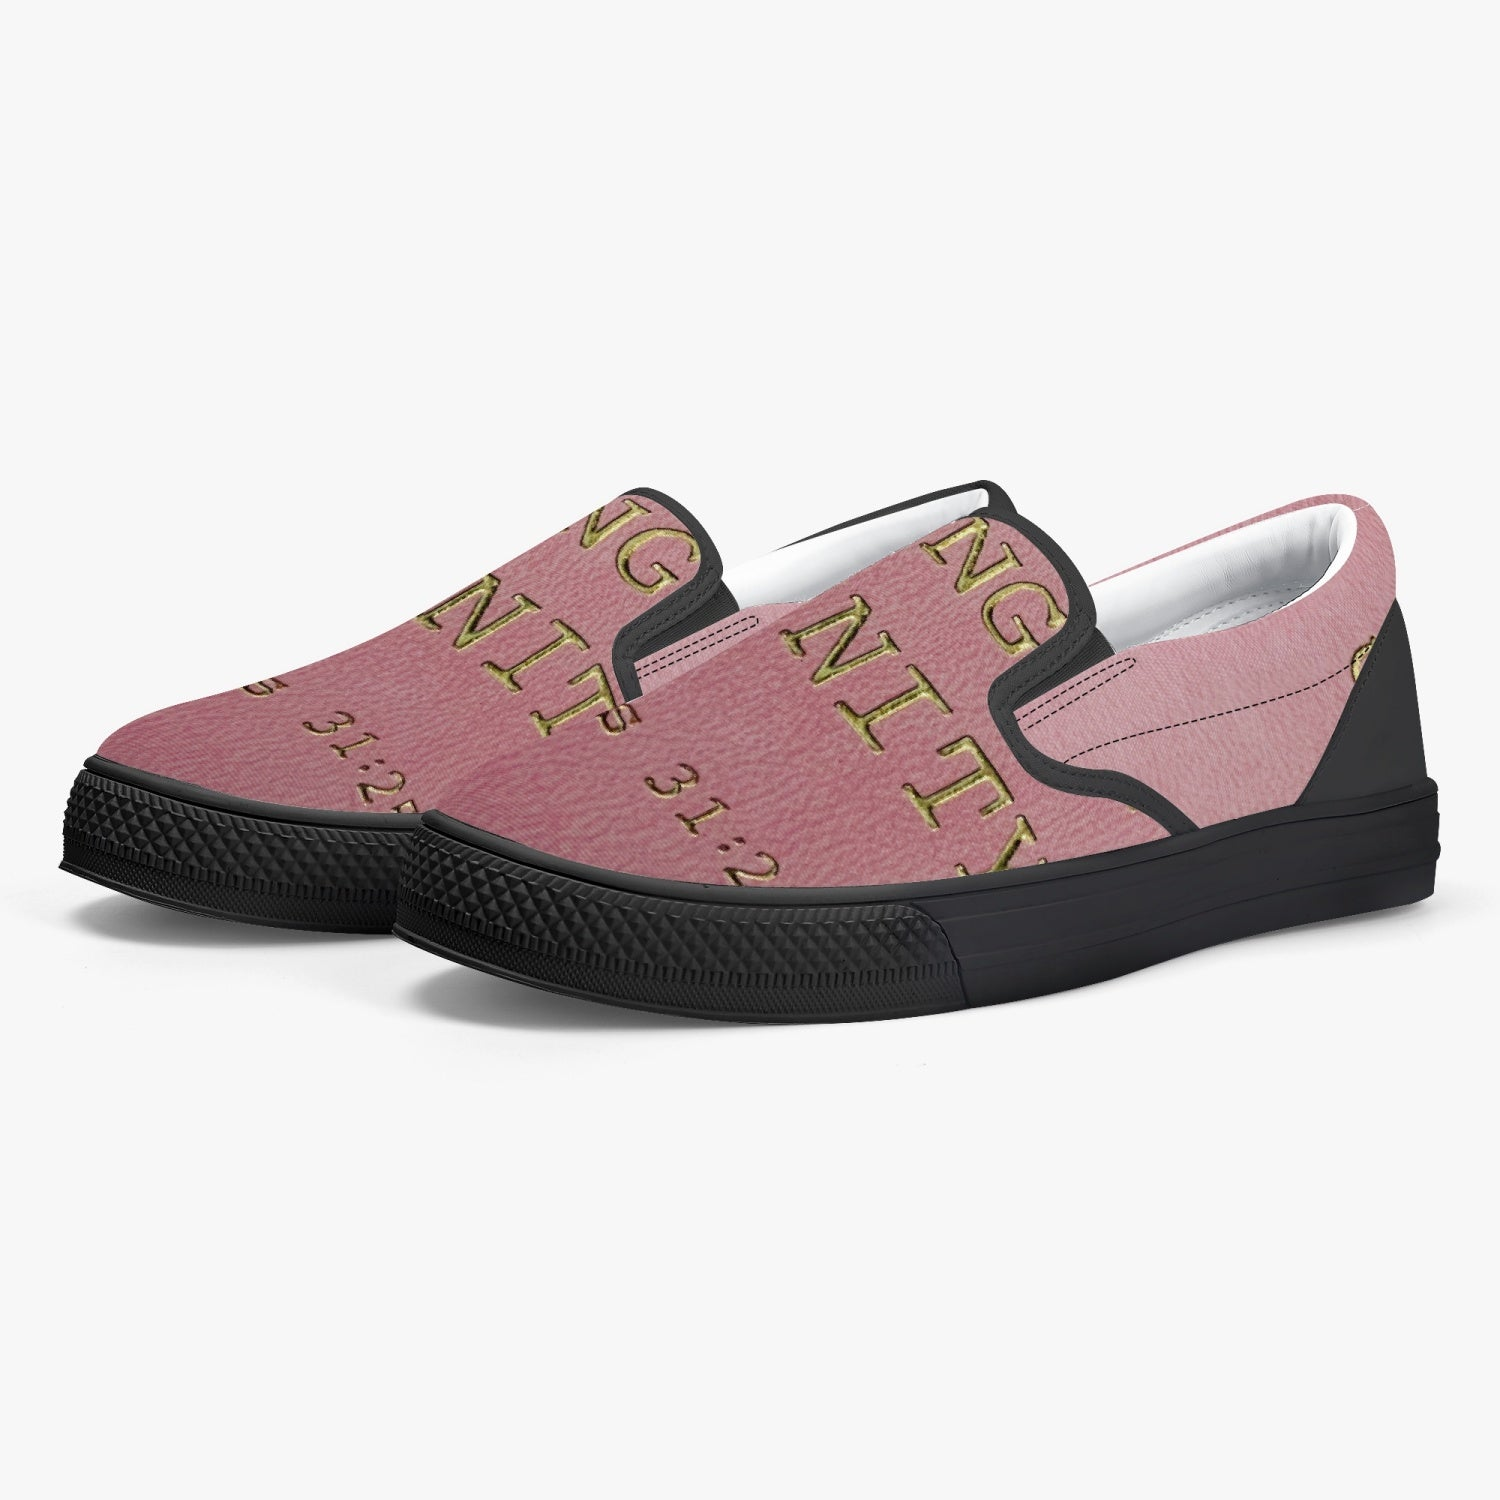 Proverbs 31 Shoes